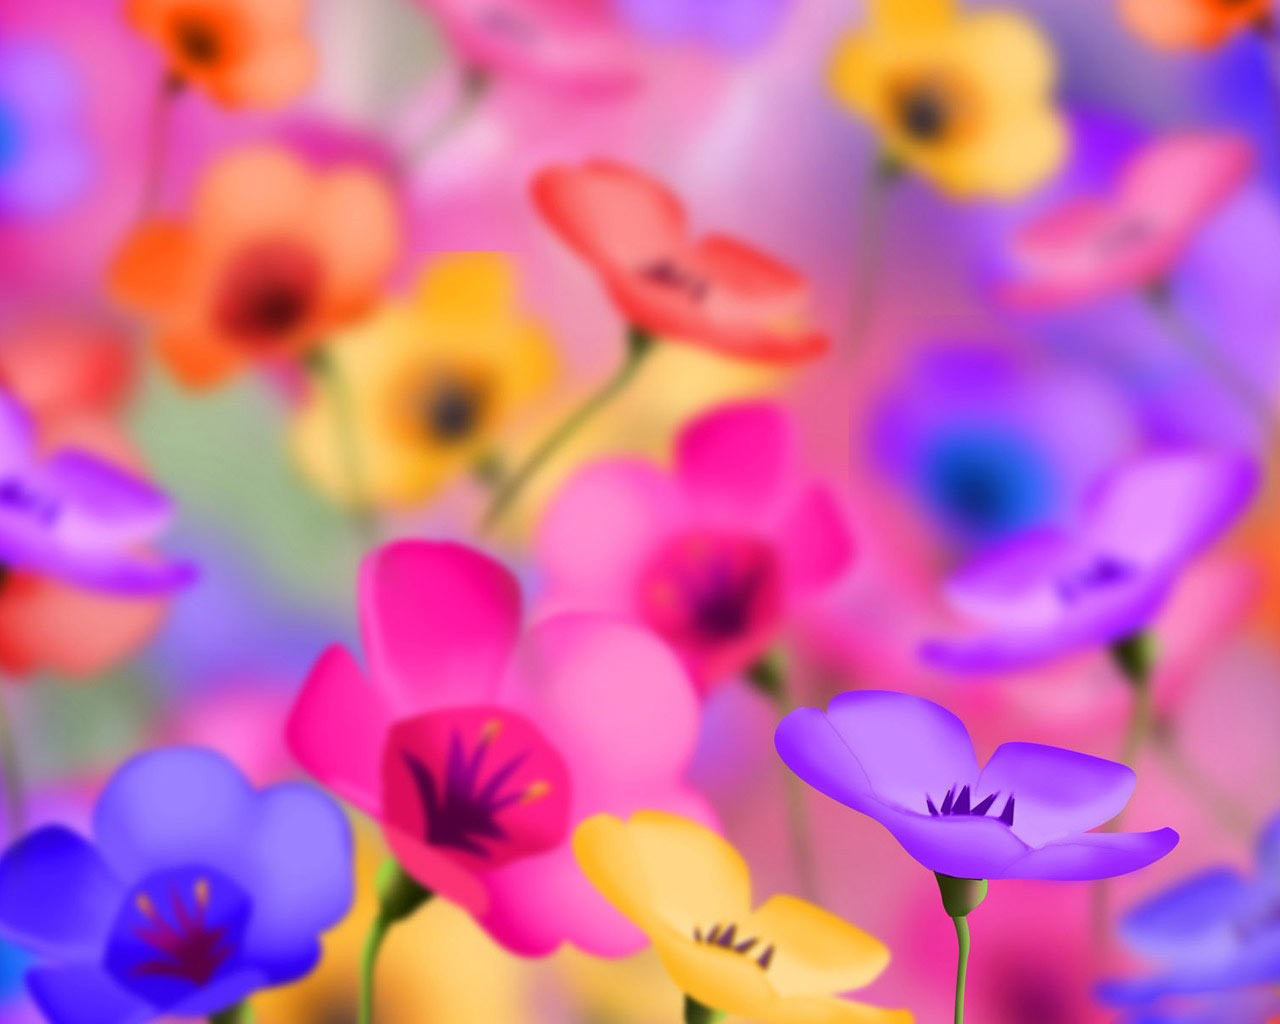 flowers for flower lovers.: Flowers background desktop wallpapers.